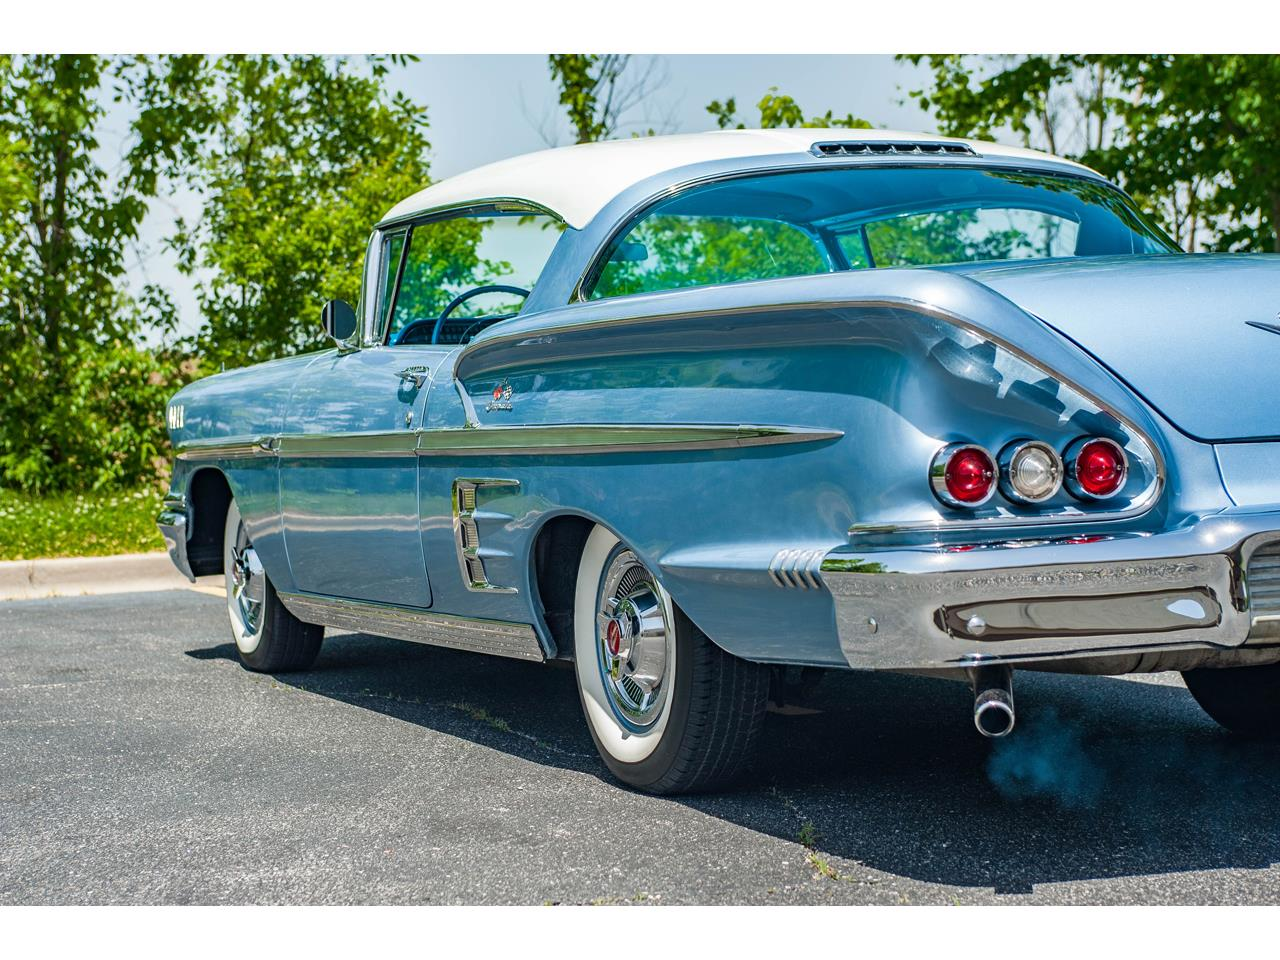 Large Picture of Classic '58 Chevrolet Impala located in O'Fallon Illinois - $62,000.00 Offered by Gateway Classic Cars - St. Louis - QB9Q